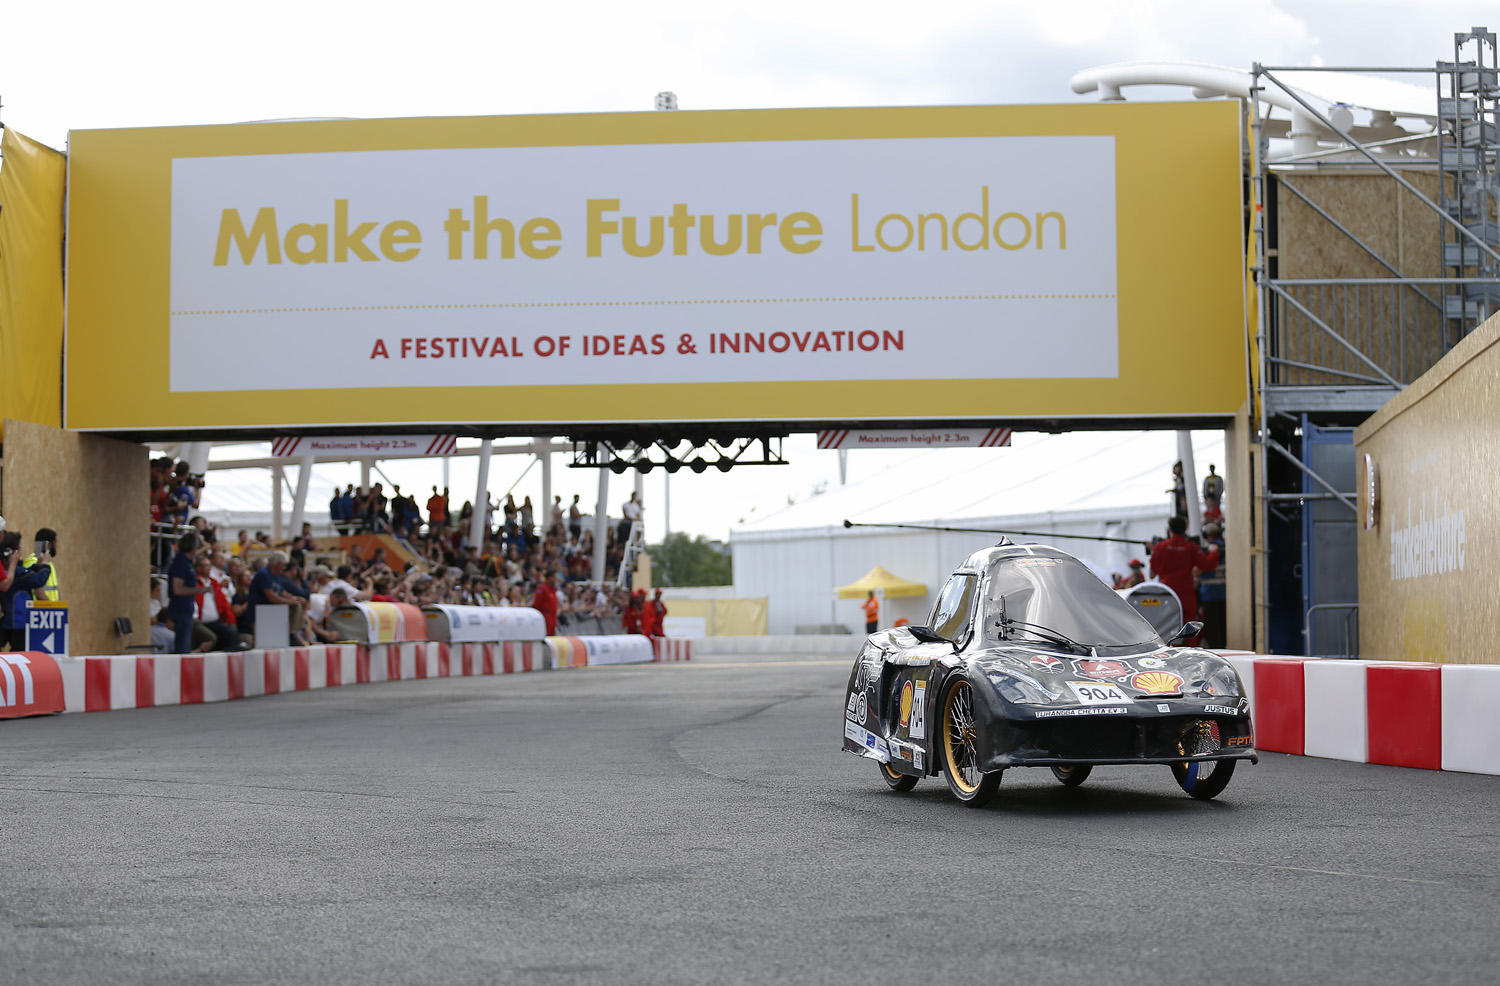 The TURANGGA CHETA EV3, #904, a battery electric UrbanConcept racing for team BUMI SILIWANGI TEAM 4 from Universitas Pendidikan Indonesia, Bandung, Indonesia on the track during Make the Future London 2016 at the Queen Elizabeth Olympic Park, Sunday, July 3, 2016 in London, UK. Today marks the conclusion of the very first Drivers' World Championships, as a head to head race against the 2016 UrbanConcept winners from North America, Asia and Europe to find the quickest and most energy-efficient driver. (Guy Levy for Shell)